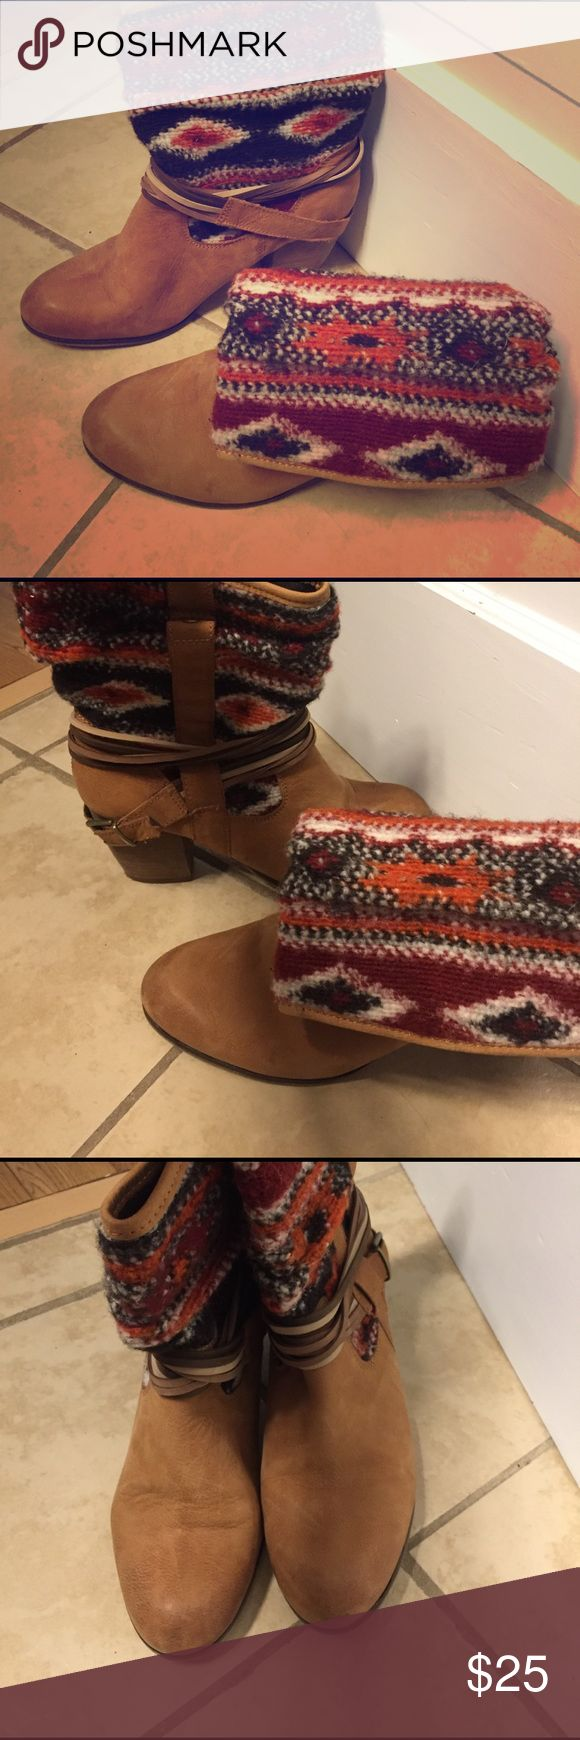 Southwestern style Steve Madden boots Super fun detailing, stacked wood heel, some wear but that's mostly from how they were styled. Maybe worn 2-3 times. Steve Madden Shoes Ankle Boots & Booties